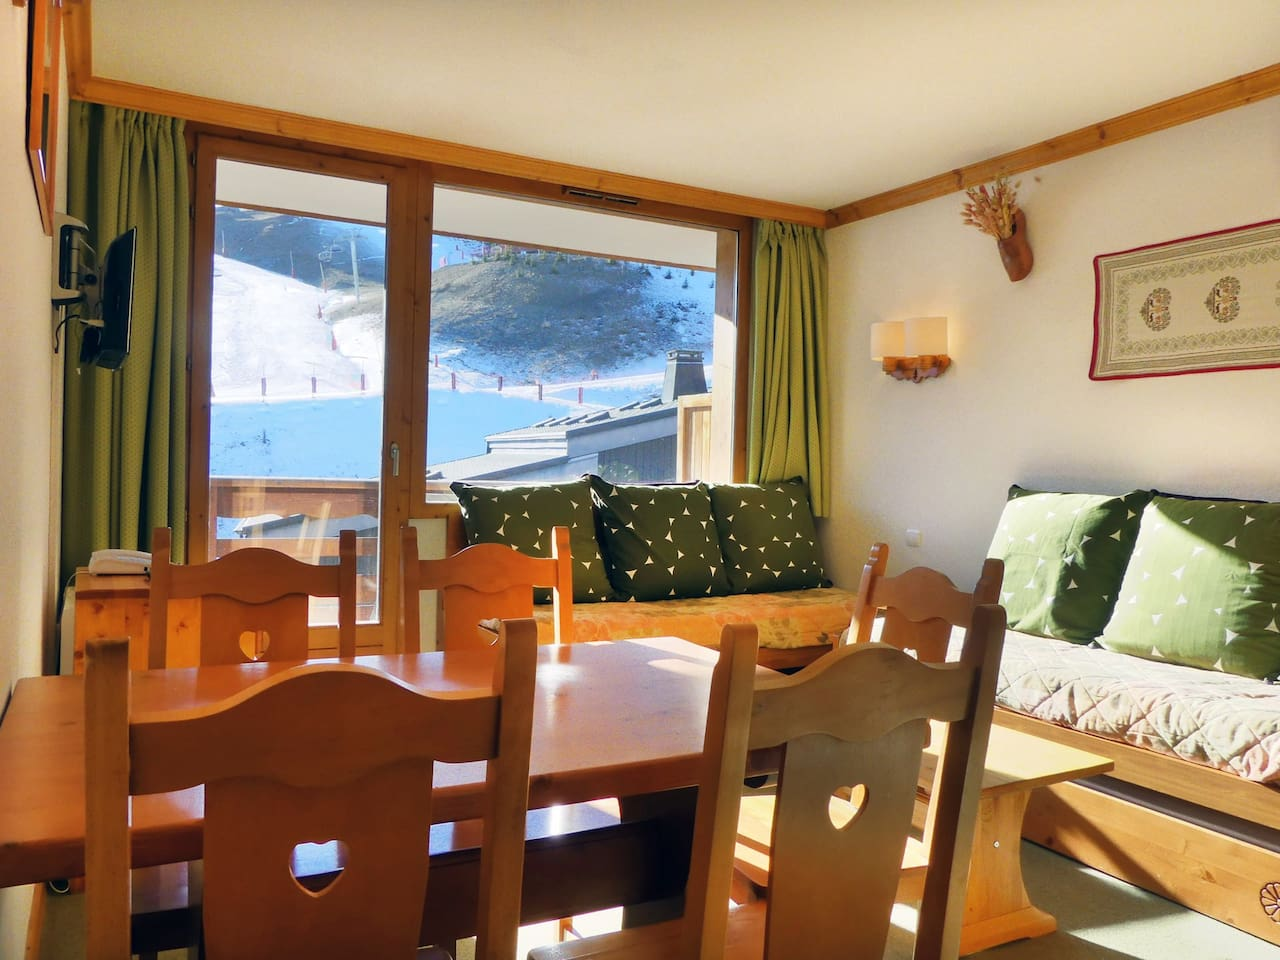 APPARTEMENT CLAIR ET CHALEUREUX, LABEL MERIBEL / BRIGHT AND WARM APARTMENT, MERIBEL LABEL